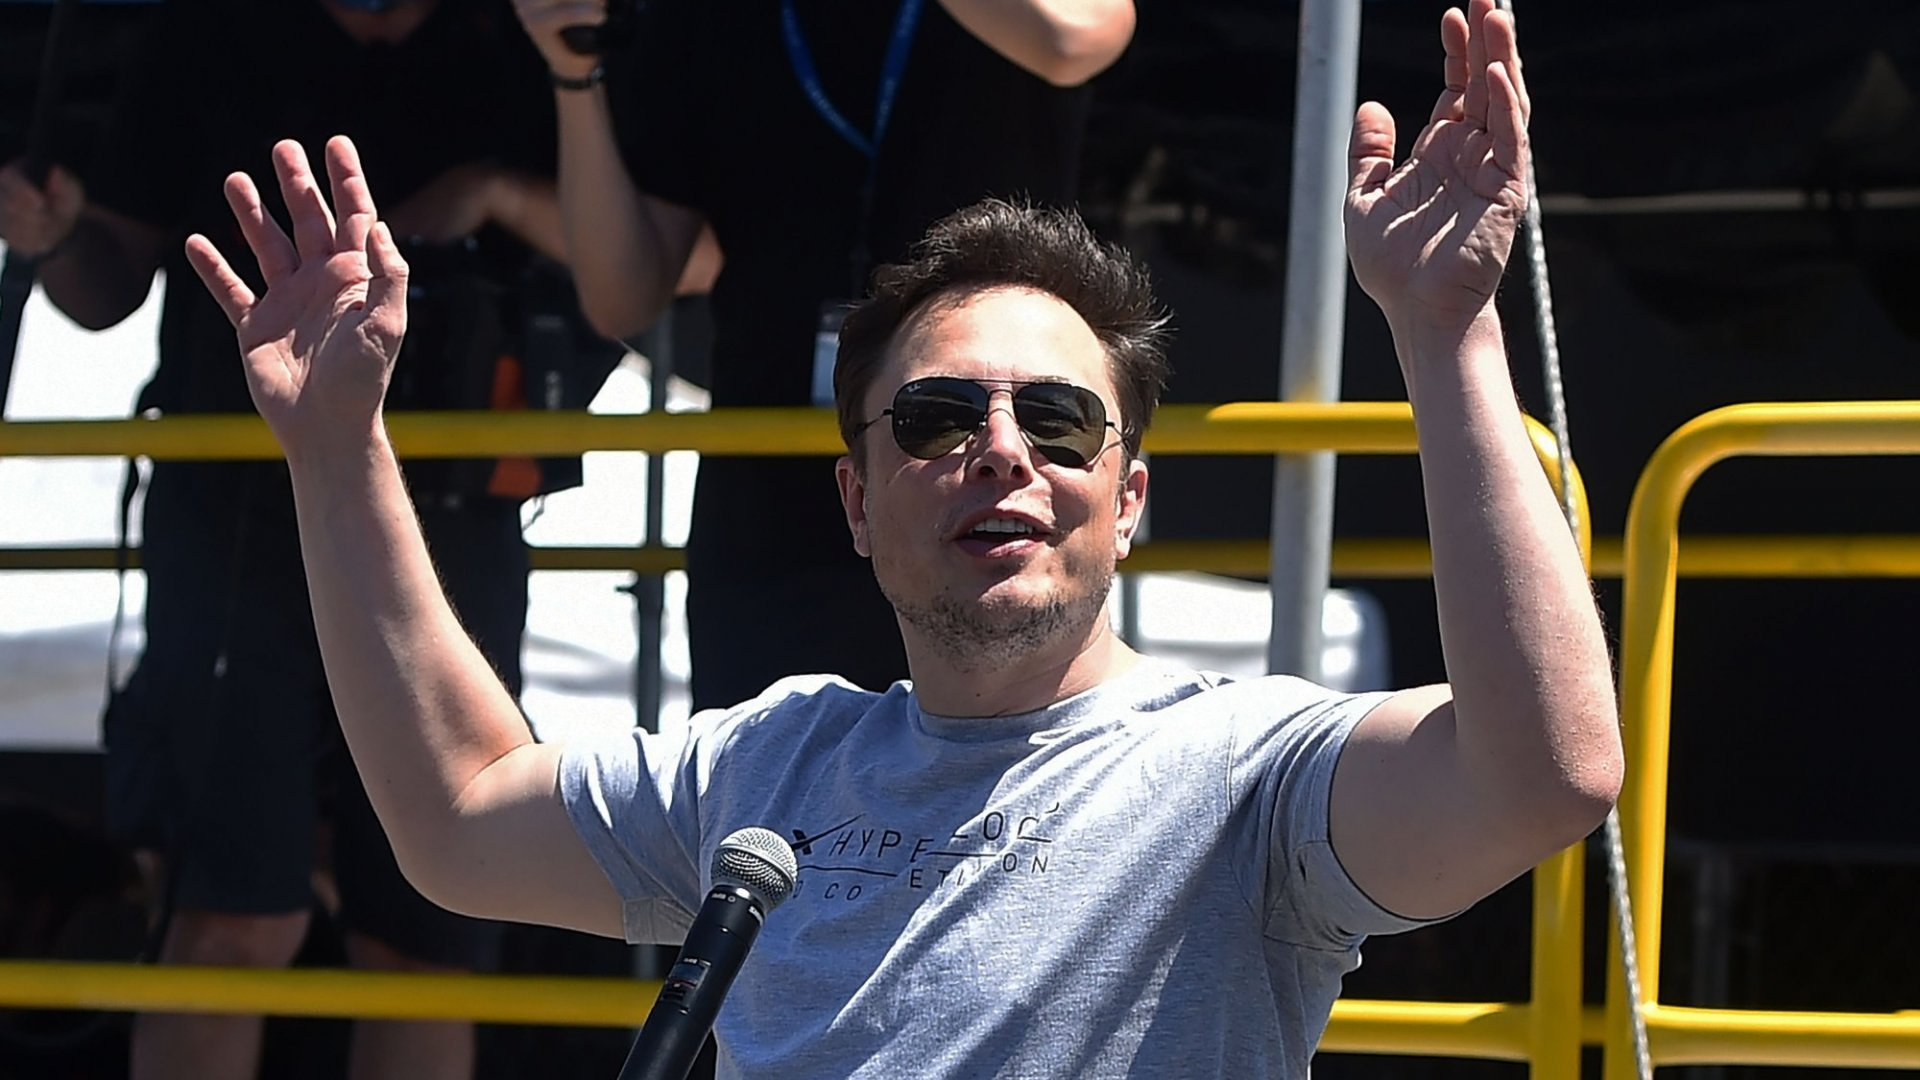 With 9 Short Words, Elon Musk Just Revealed the Single Most Important Issue Facing Every Successful Entrepreneur